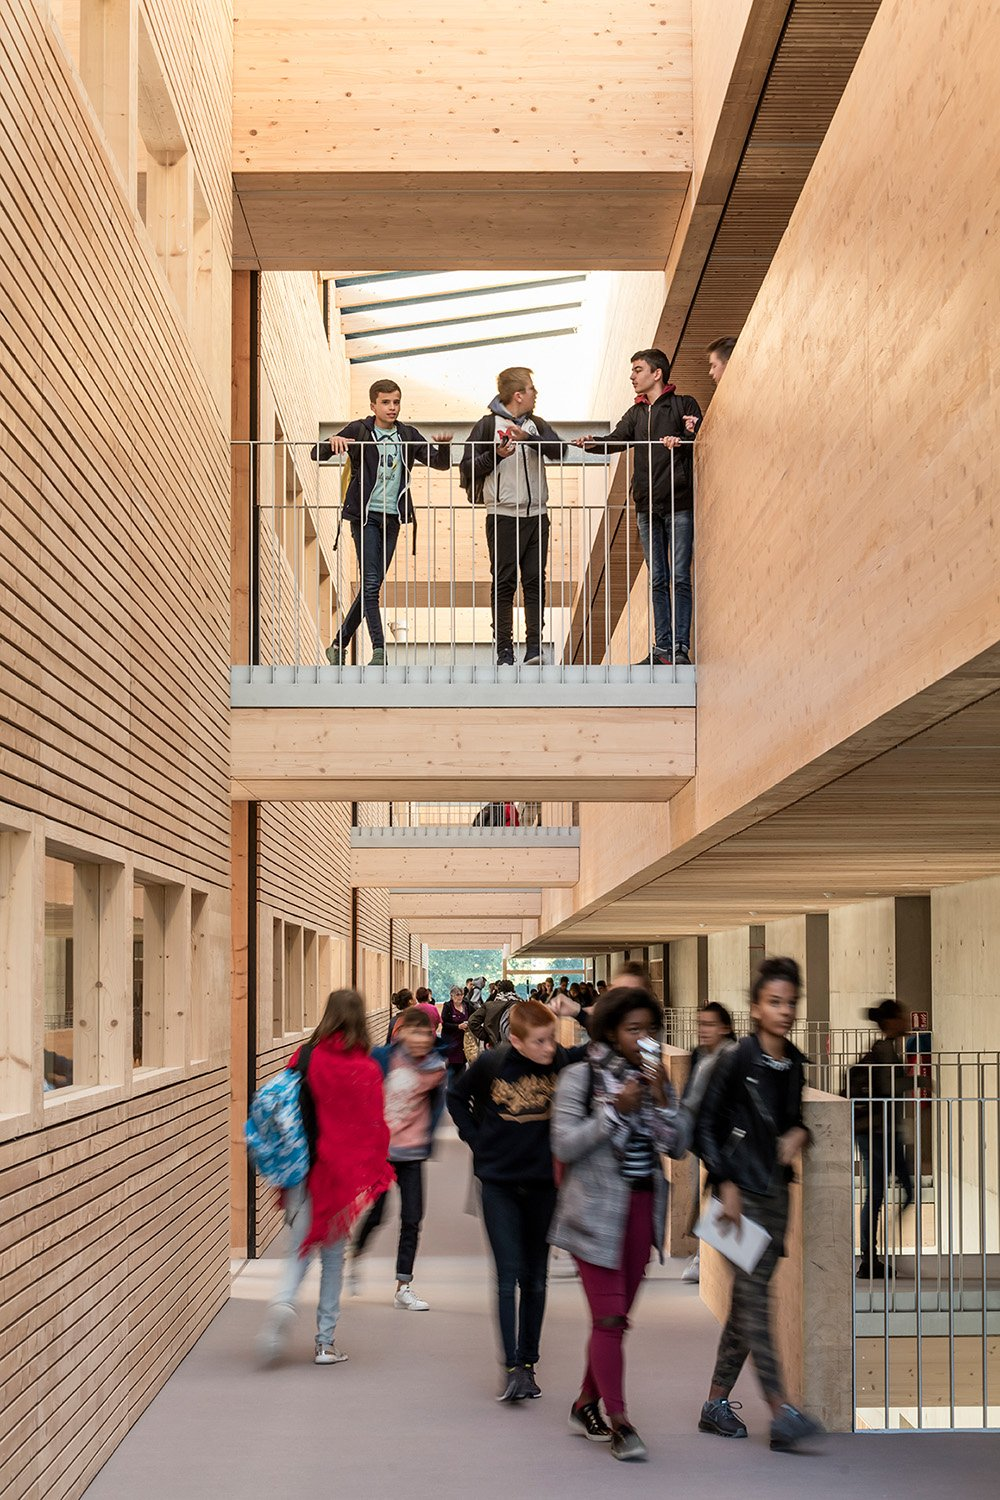 College Lamballe - circulation with bridges to the classrooms Luc Boegly